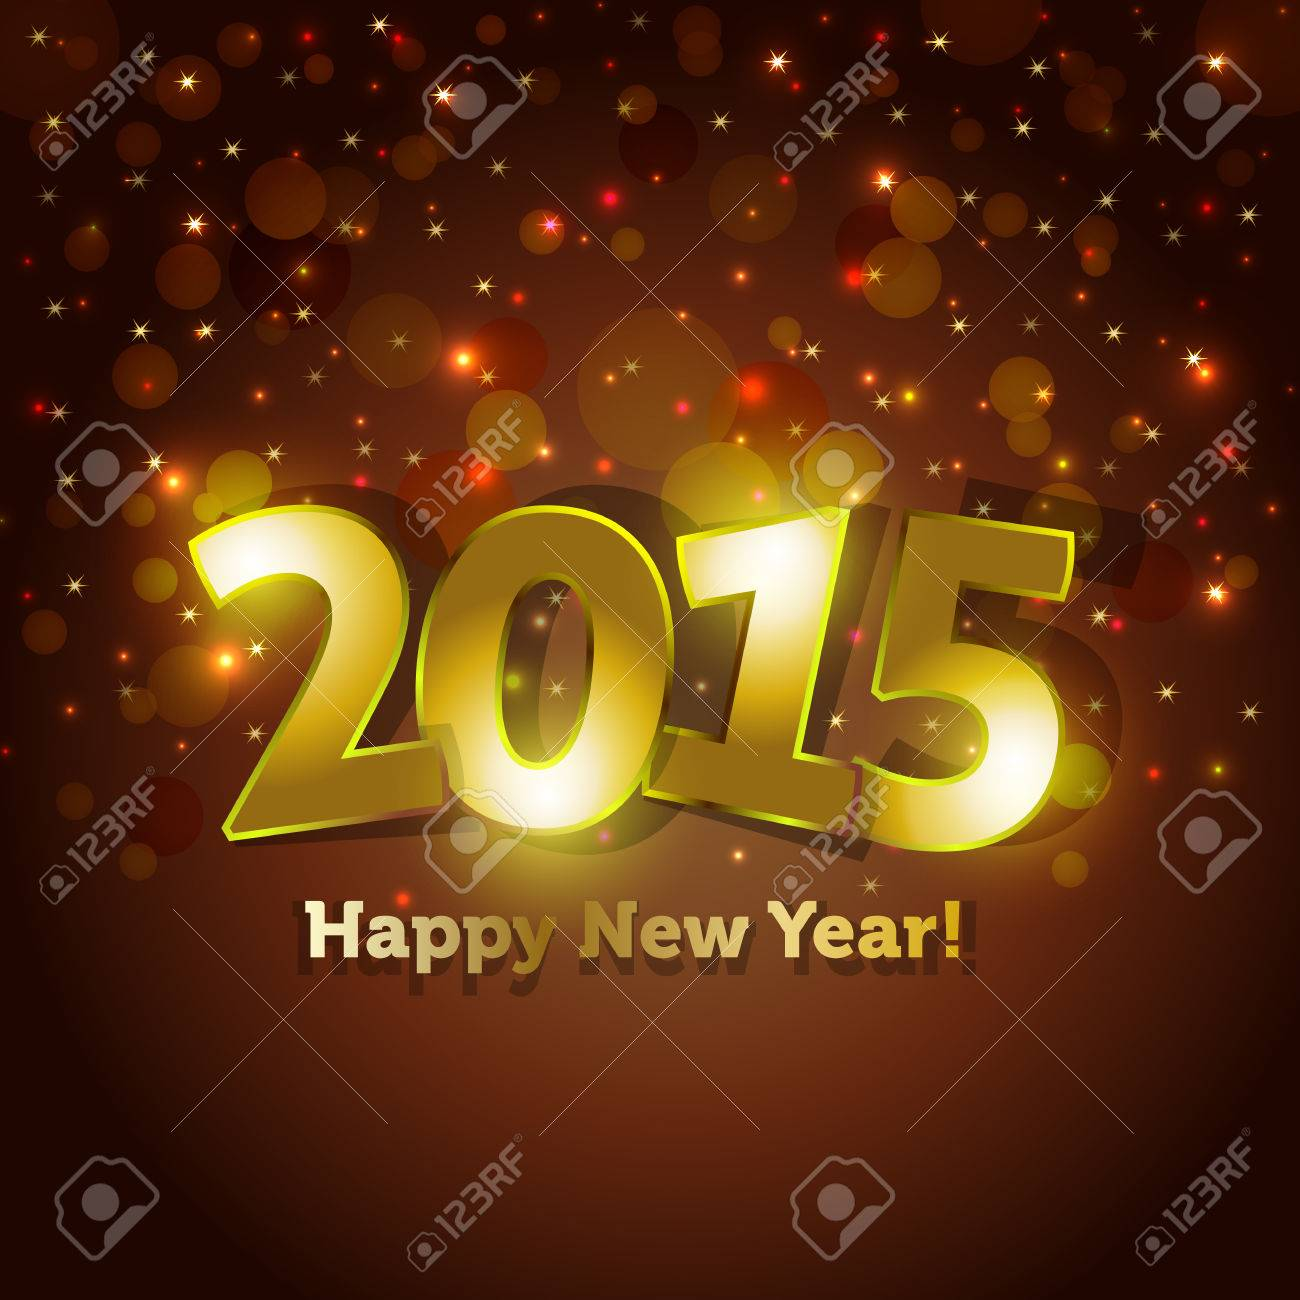 golden 2015 Happy New Year greeting card with sparking spot lights background - 29073151